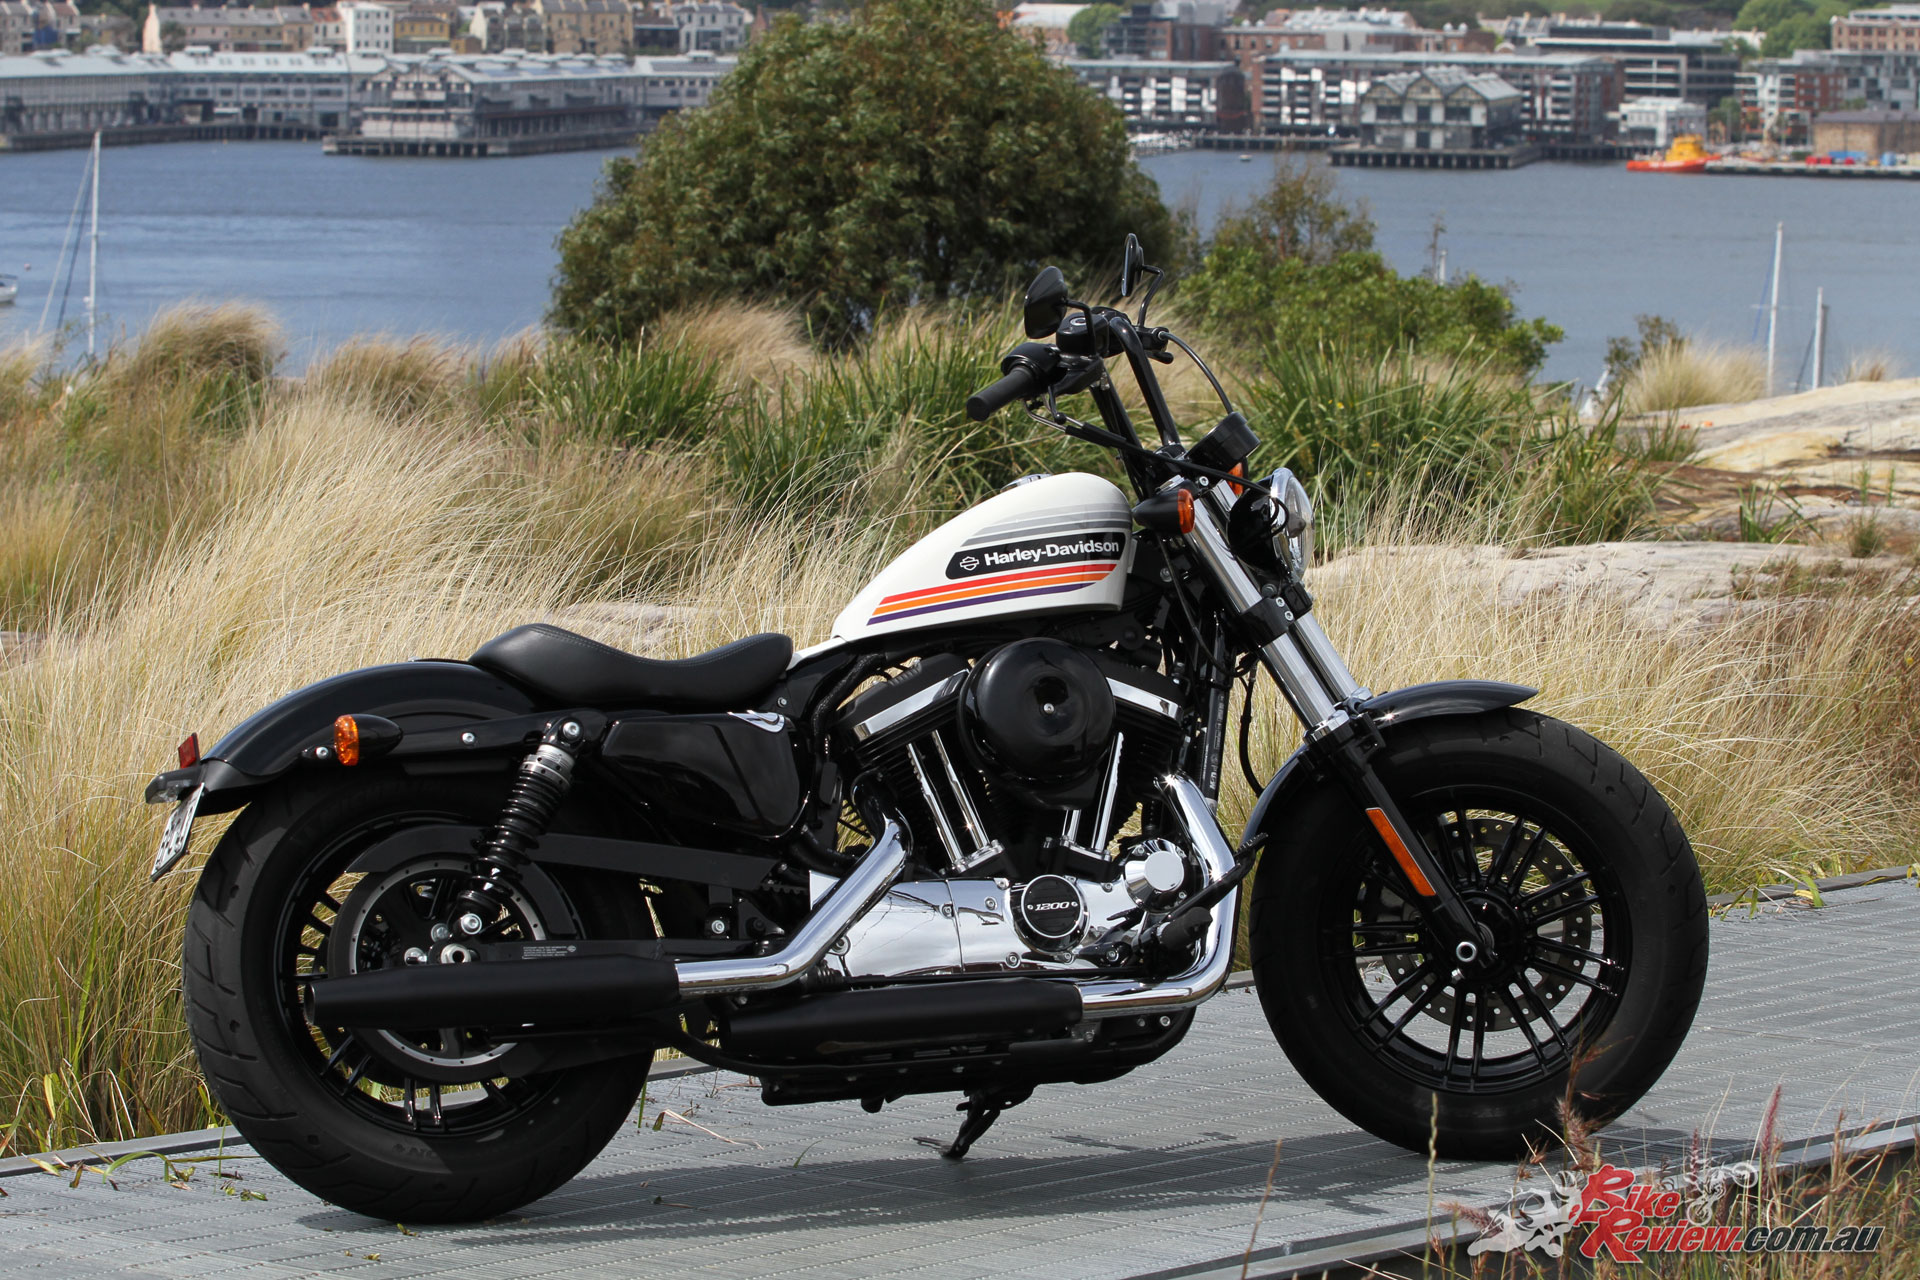 Review: 2018 Harley-Davidson FortyEight Special - Bike Review